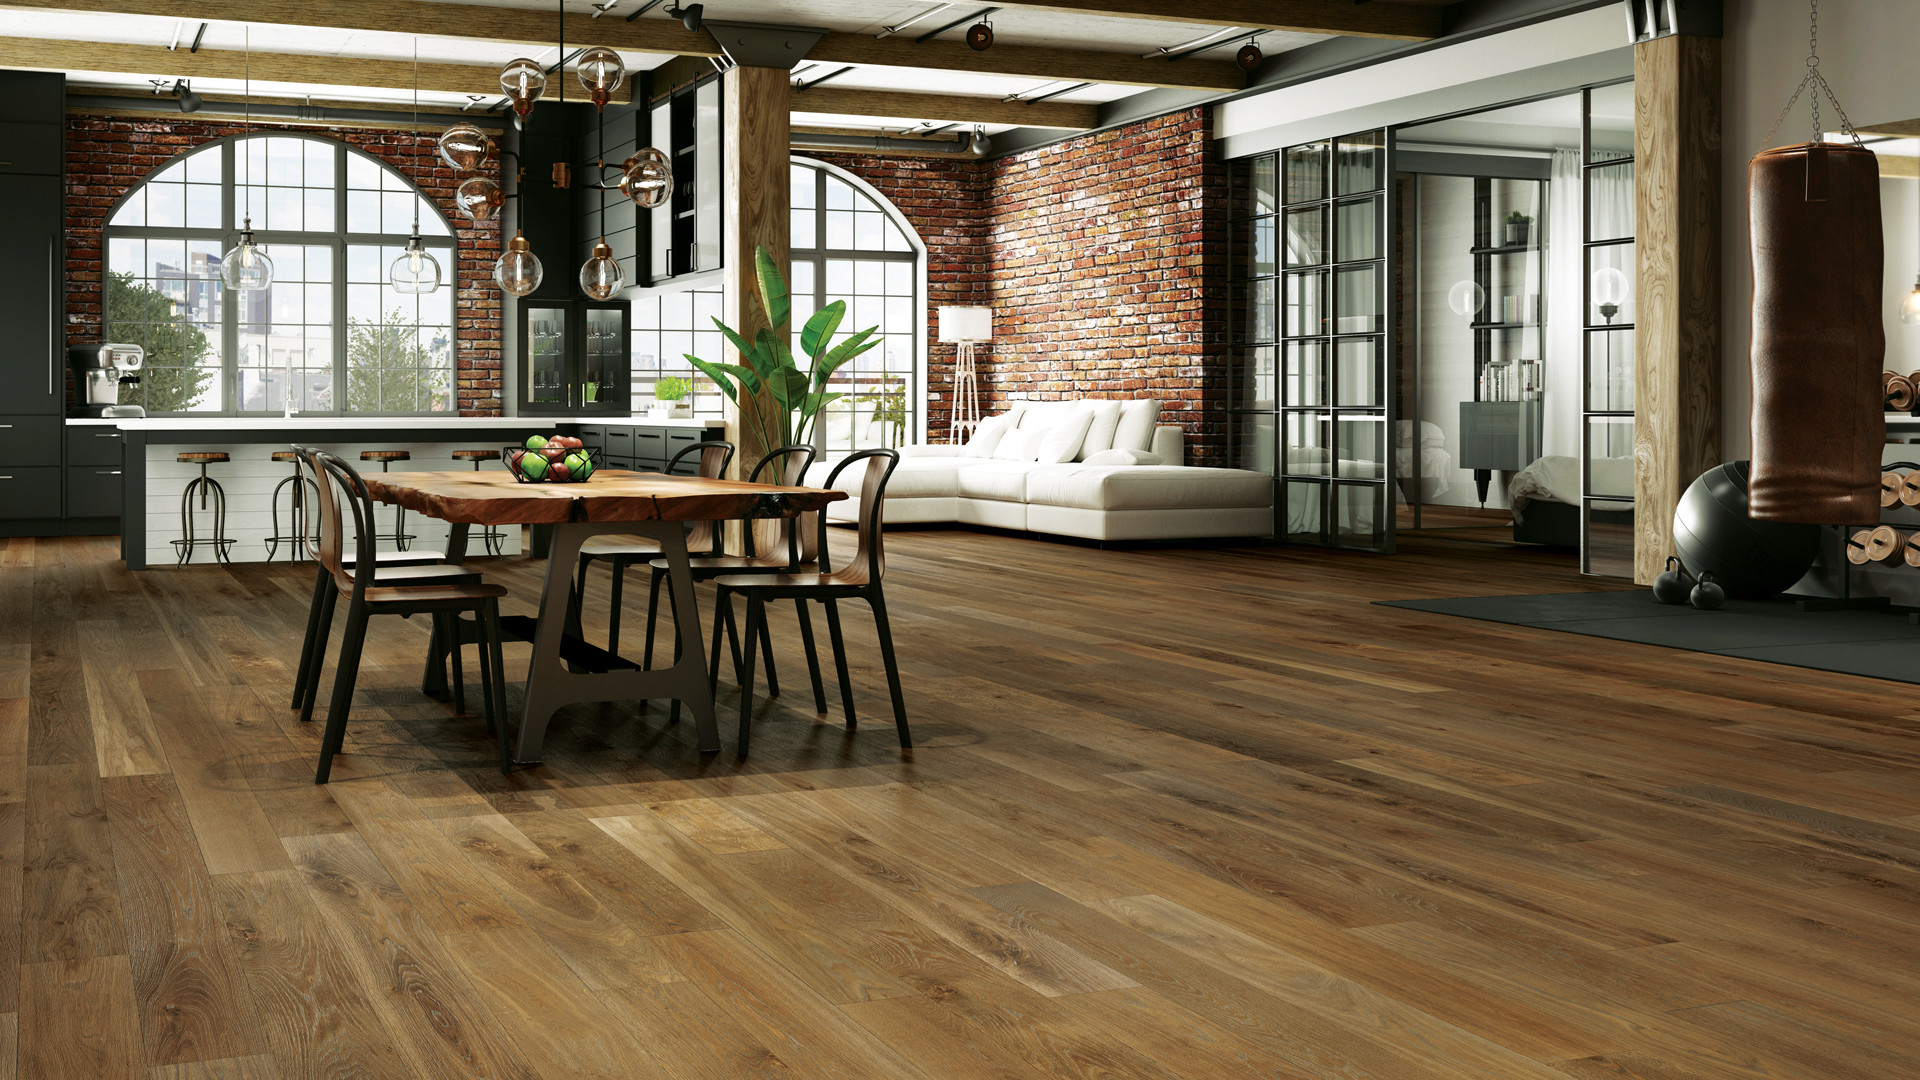 discount hardwood floors molding of 4 latest hardwood flooring trends of 2018 lauzon flooring in combined with a wire brushed texture and an ultra matte sheen these new 7a½ wide white oak hardwood floors will definitely add character to your home